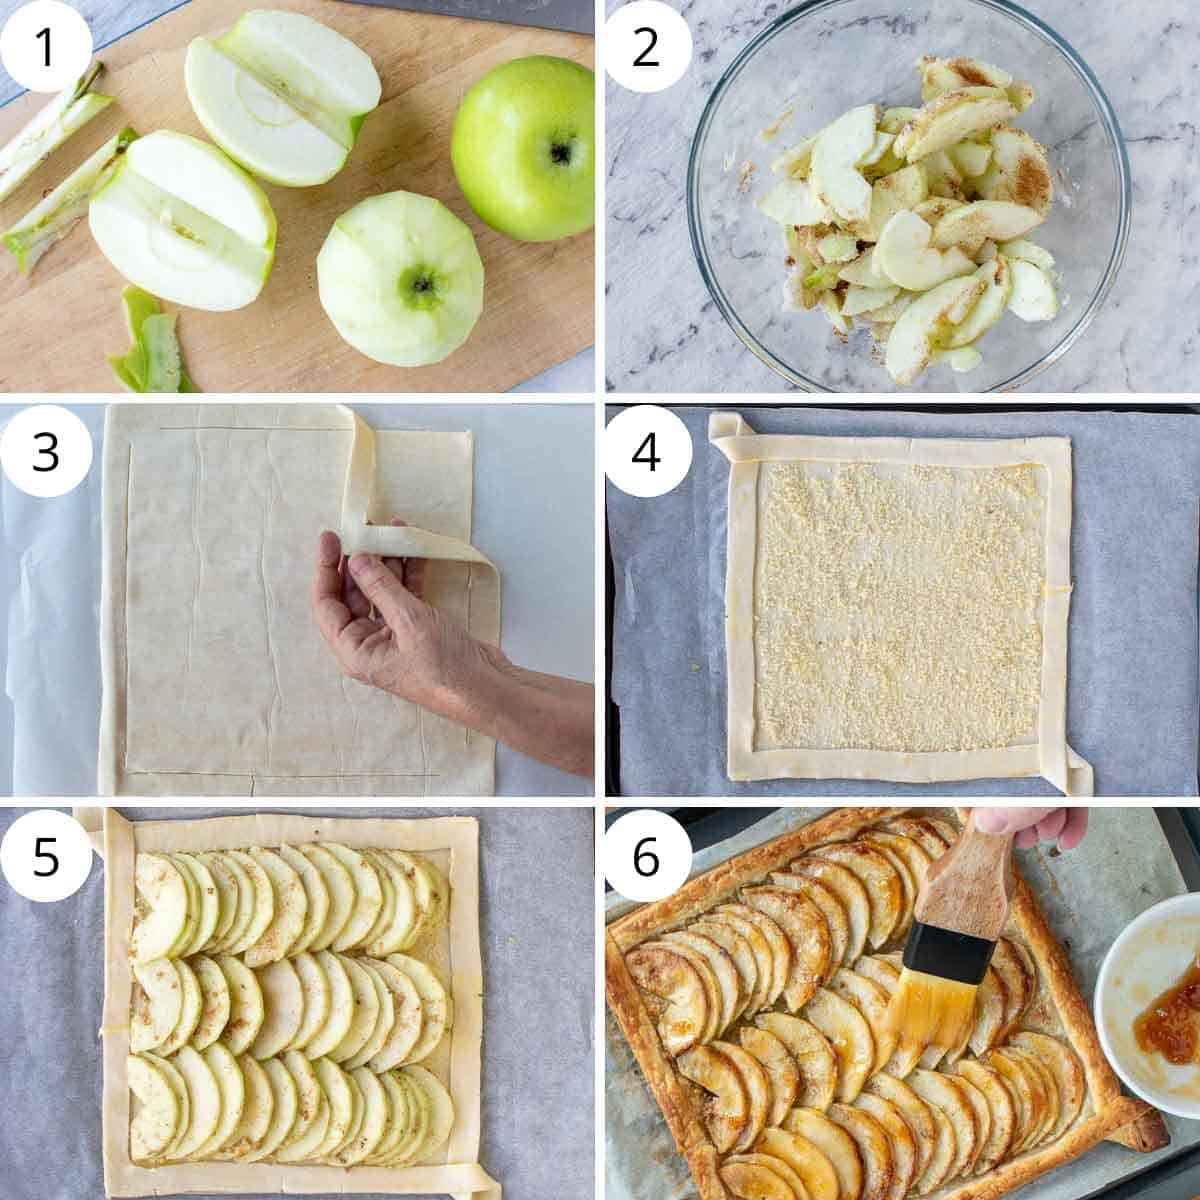 6 step photo collage showing how to make puff pastry apple tart.